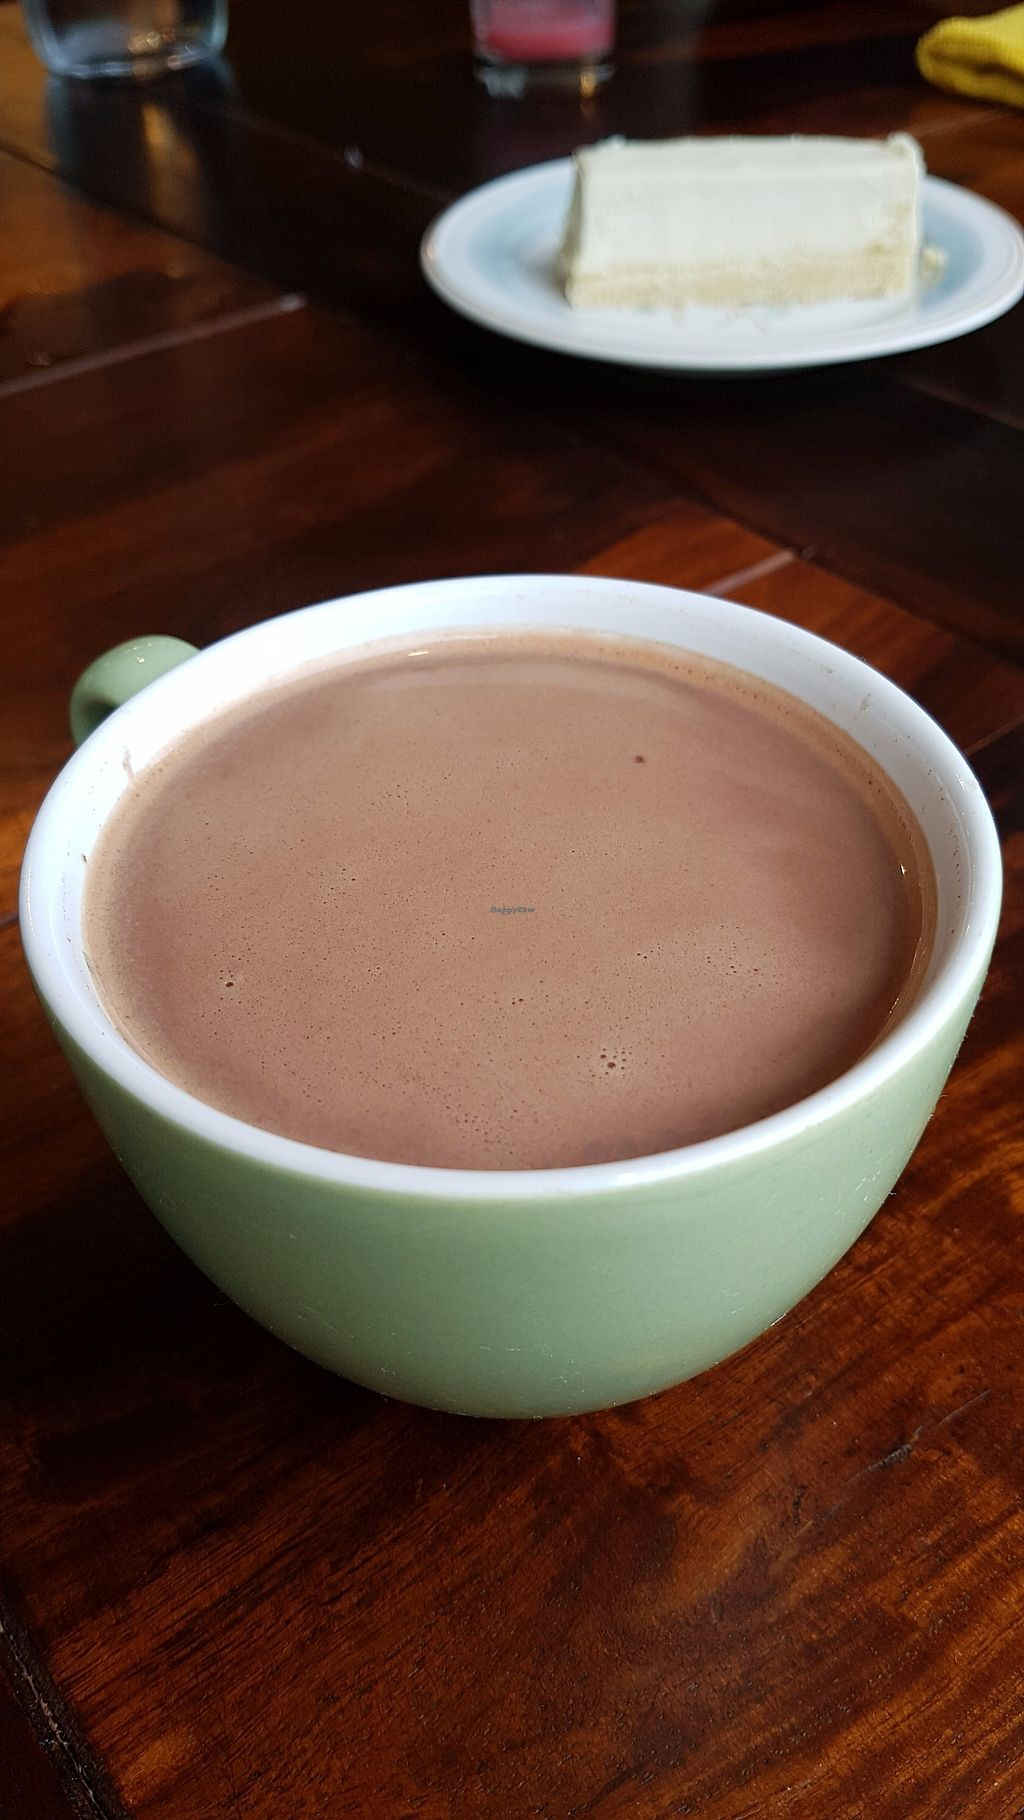 """Photo of Les Gourmandises Louca   by <a href=""""/members/profile/JonJon"""">JonJon</a> <br/>Hot chocolate <br/> July 28, 2017  - <a href='/contact/abuse/image/91706/285770'>Report</a>"""